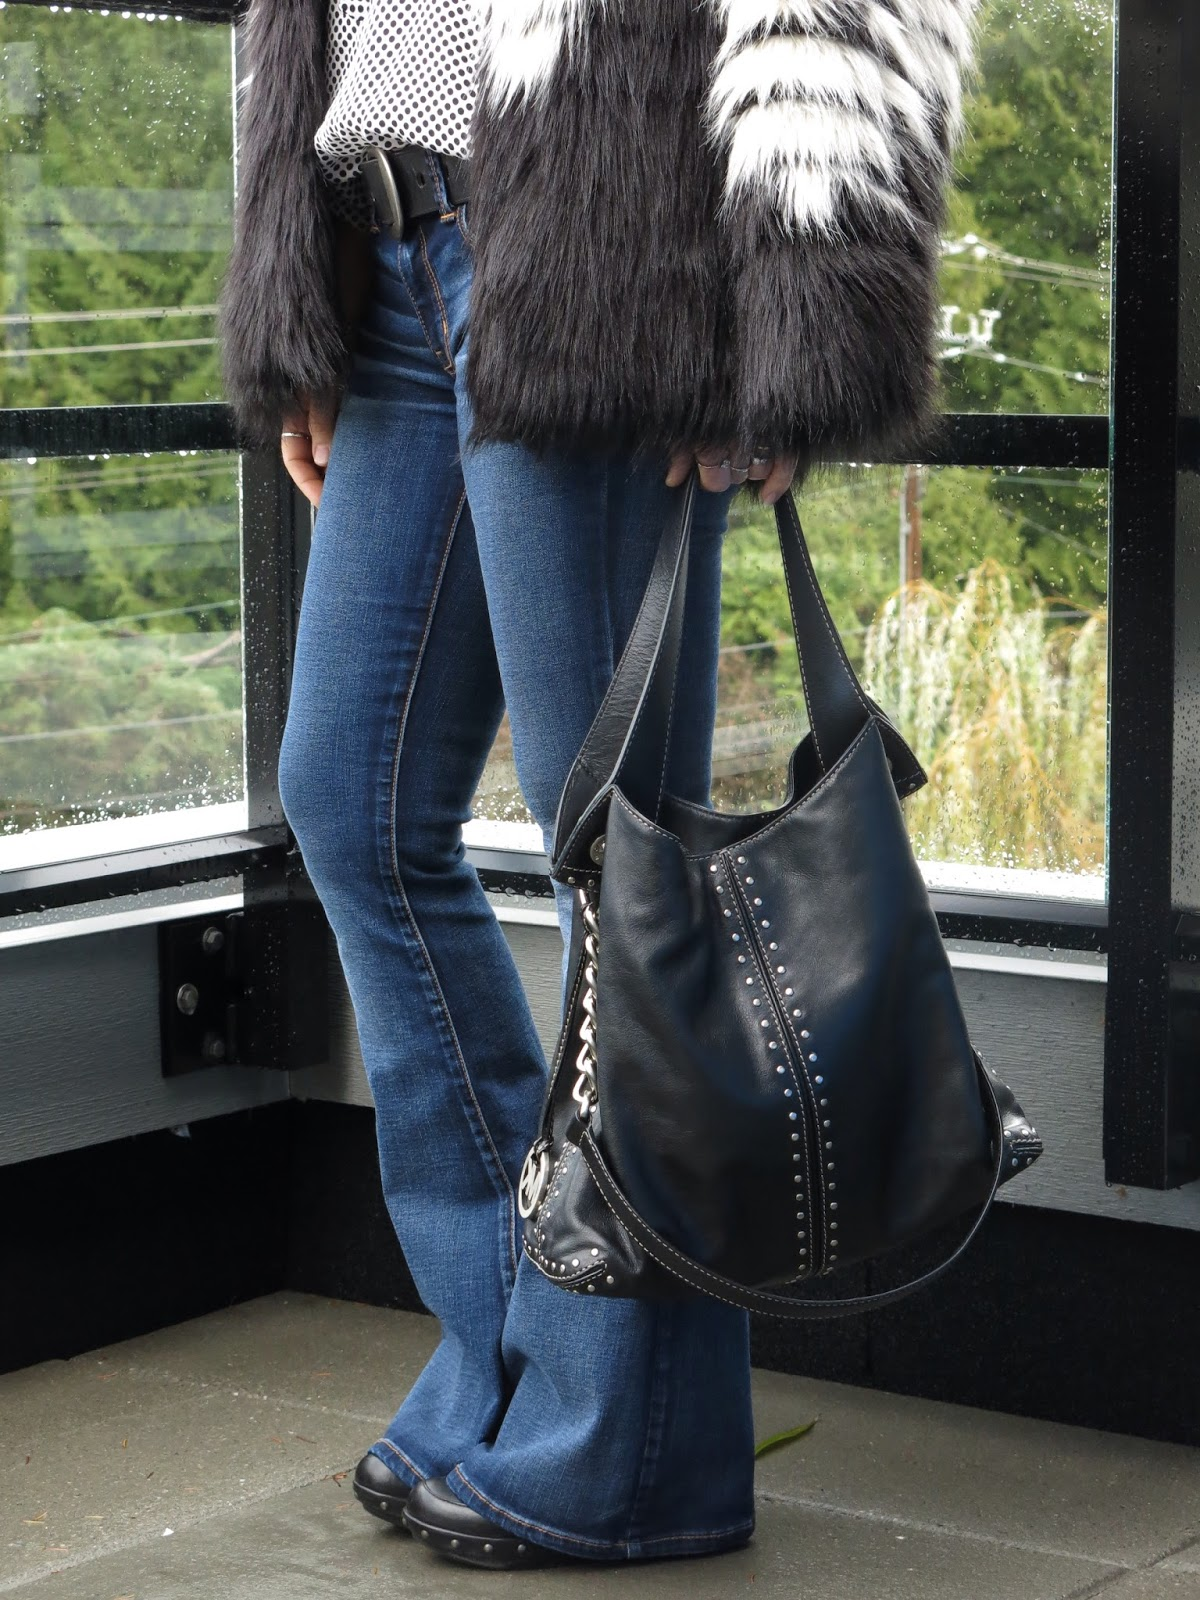 colour-blocked faux-fur jacket, polka-dotted blouse, flare jeans, and Michael Kors bag